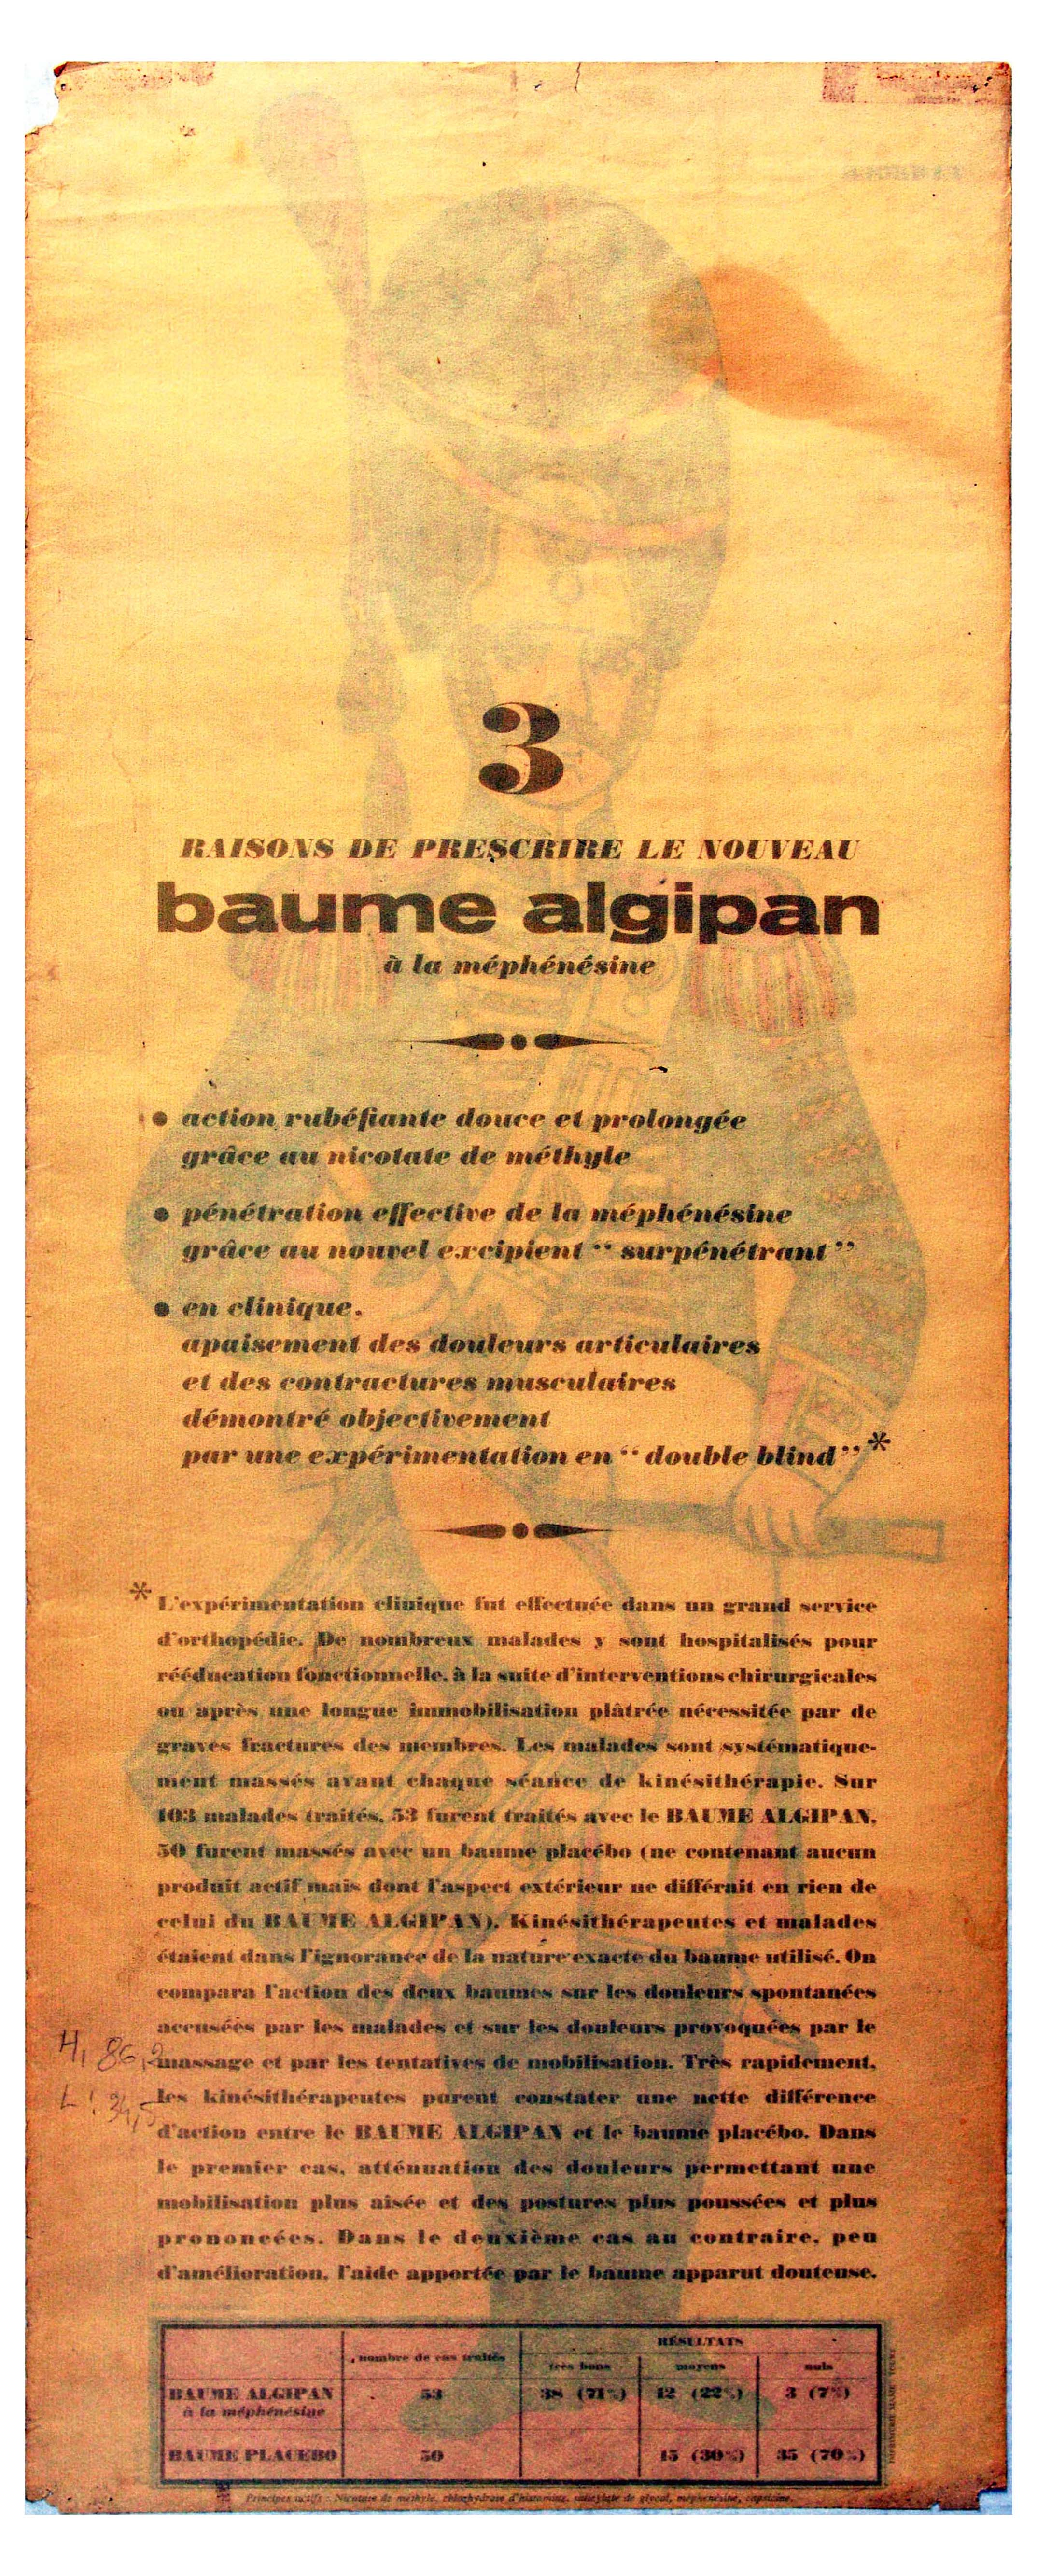 Advertising Poster Drummer Tambour Baume Algipan French Army Uniform - Image 2 of 2